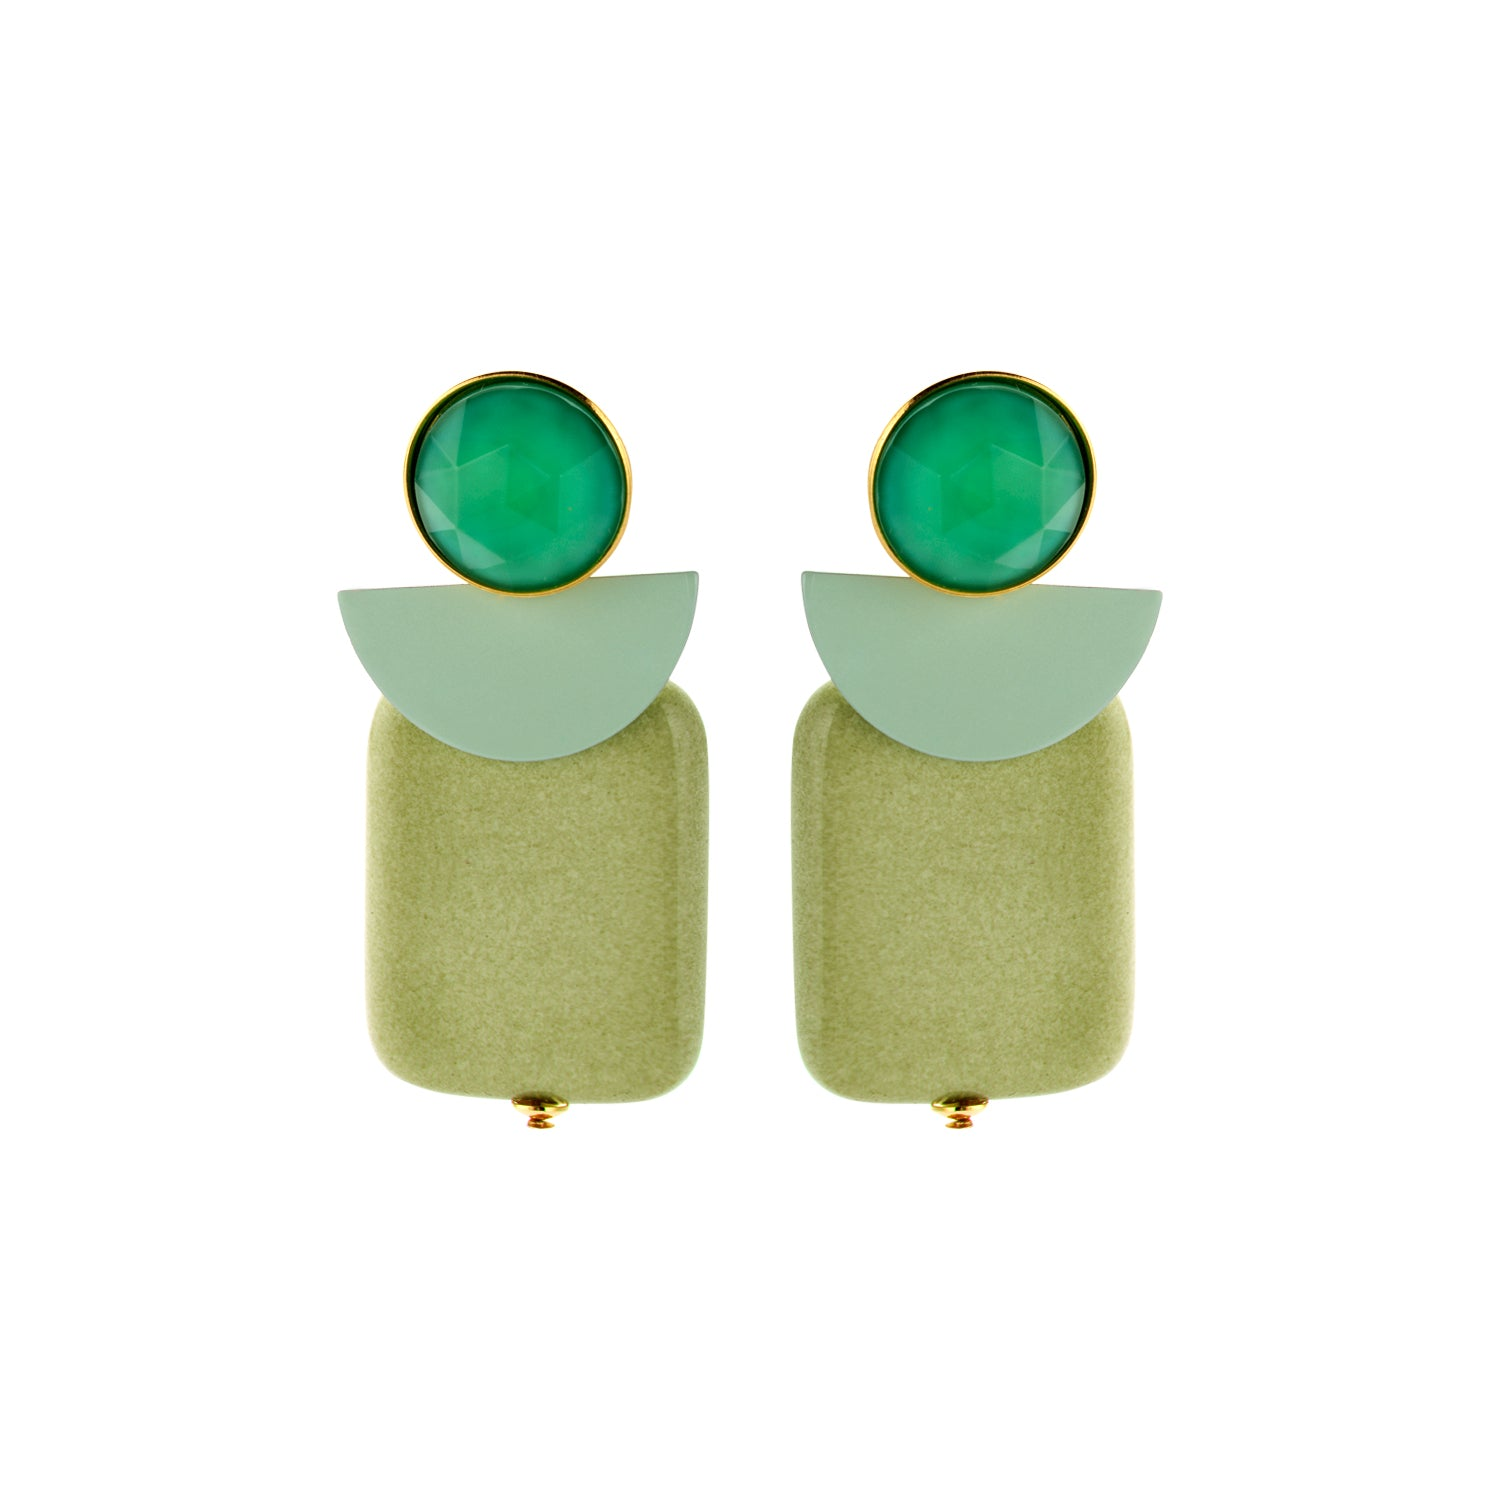 Attina moon eucalyptus earrings - Souvenirs de Pomme